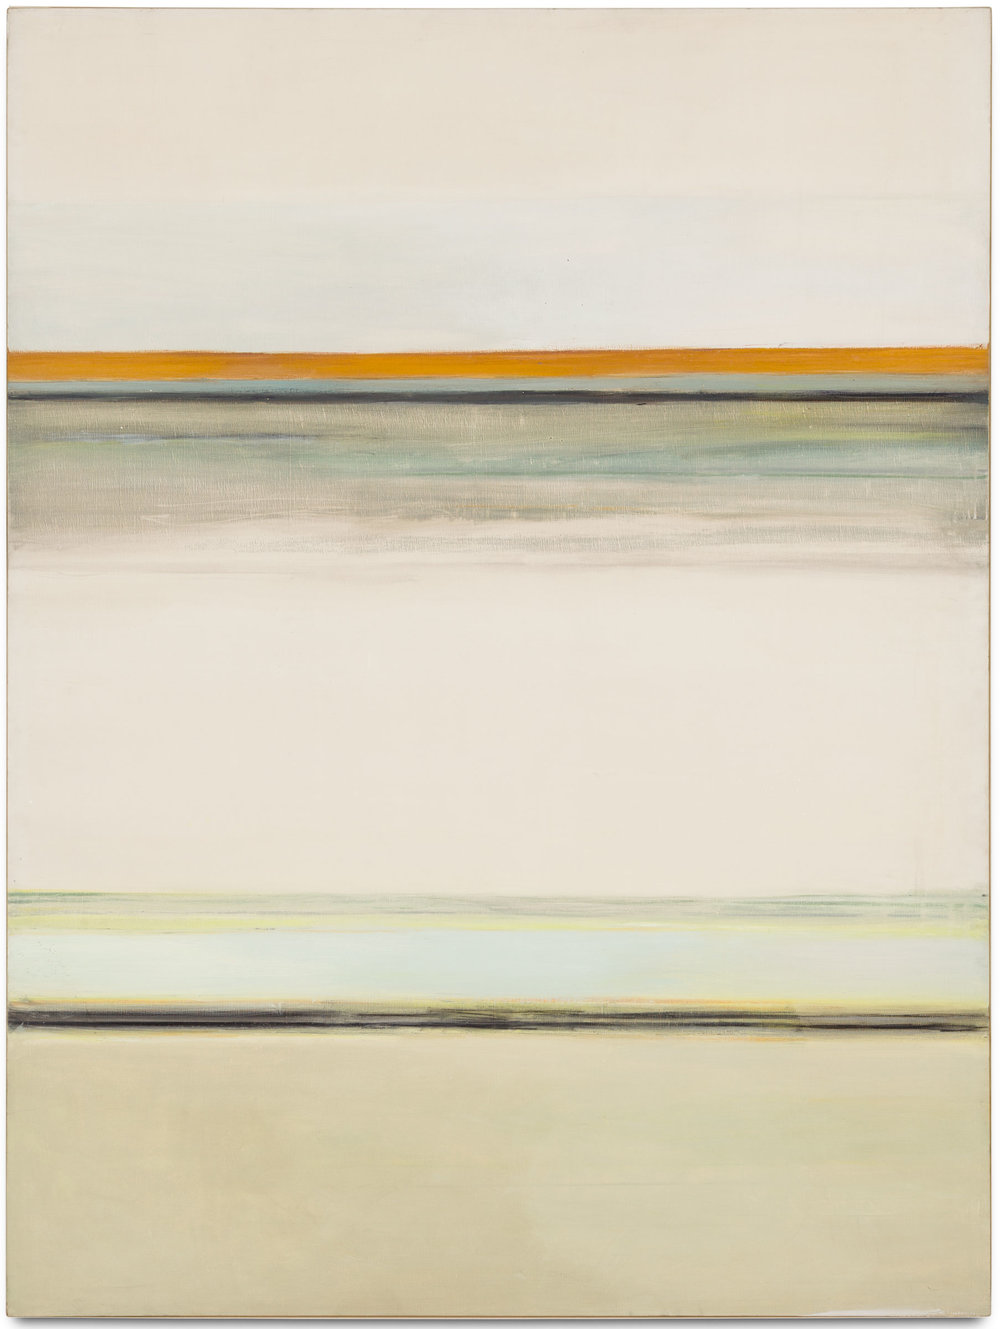 Hedda Sterne, Vertical Horizontal #7 1/2 , 1963, Oil on canvas, 72 in. x 54 in; Private collection